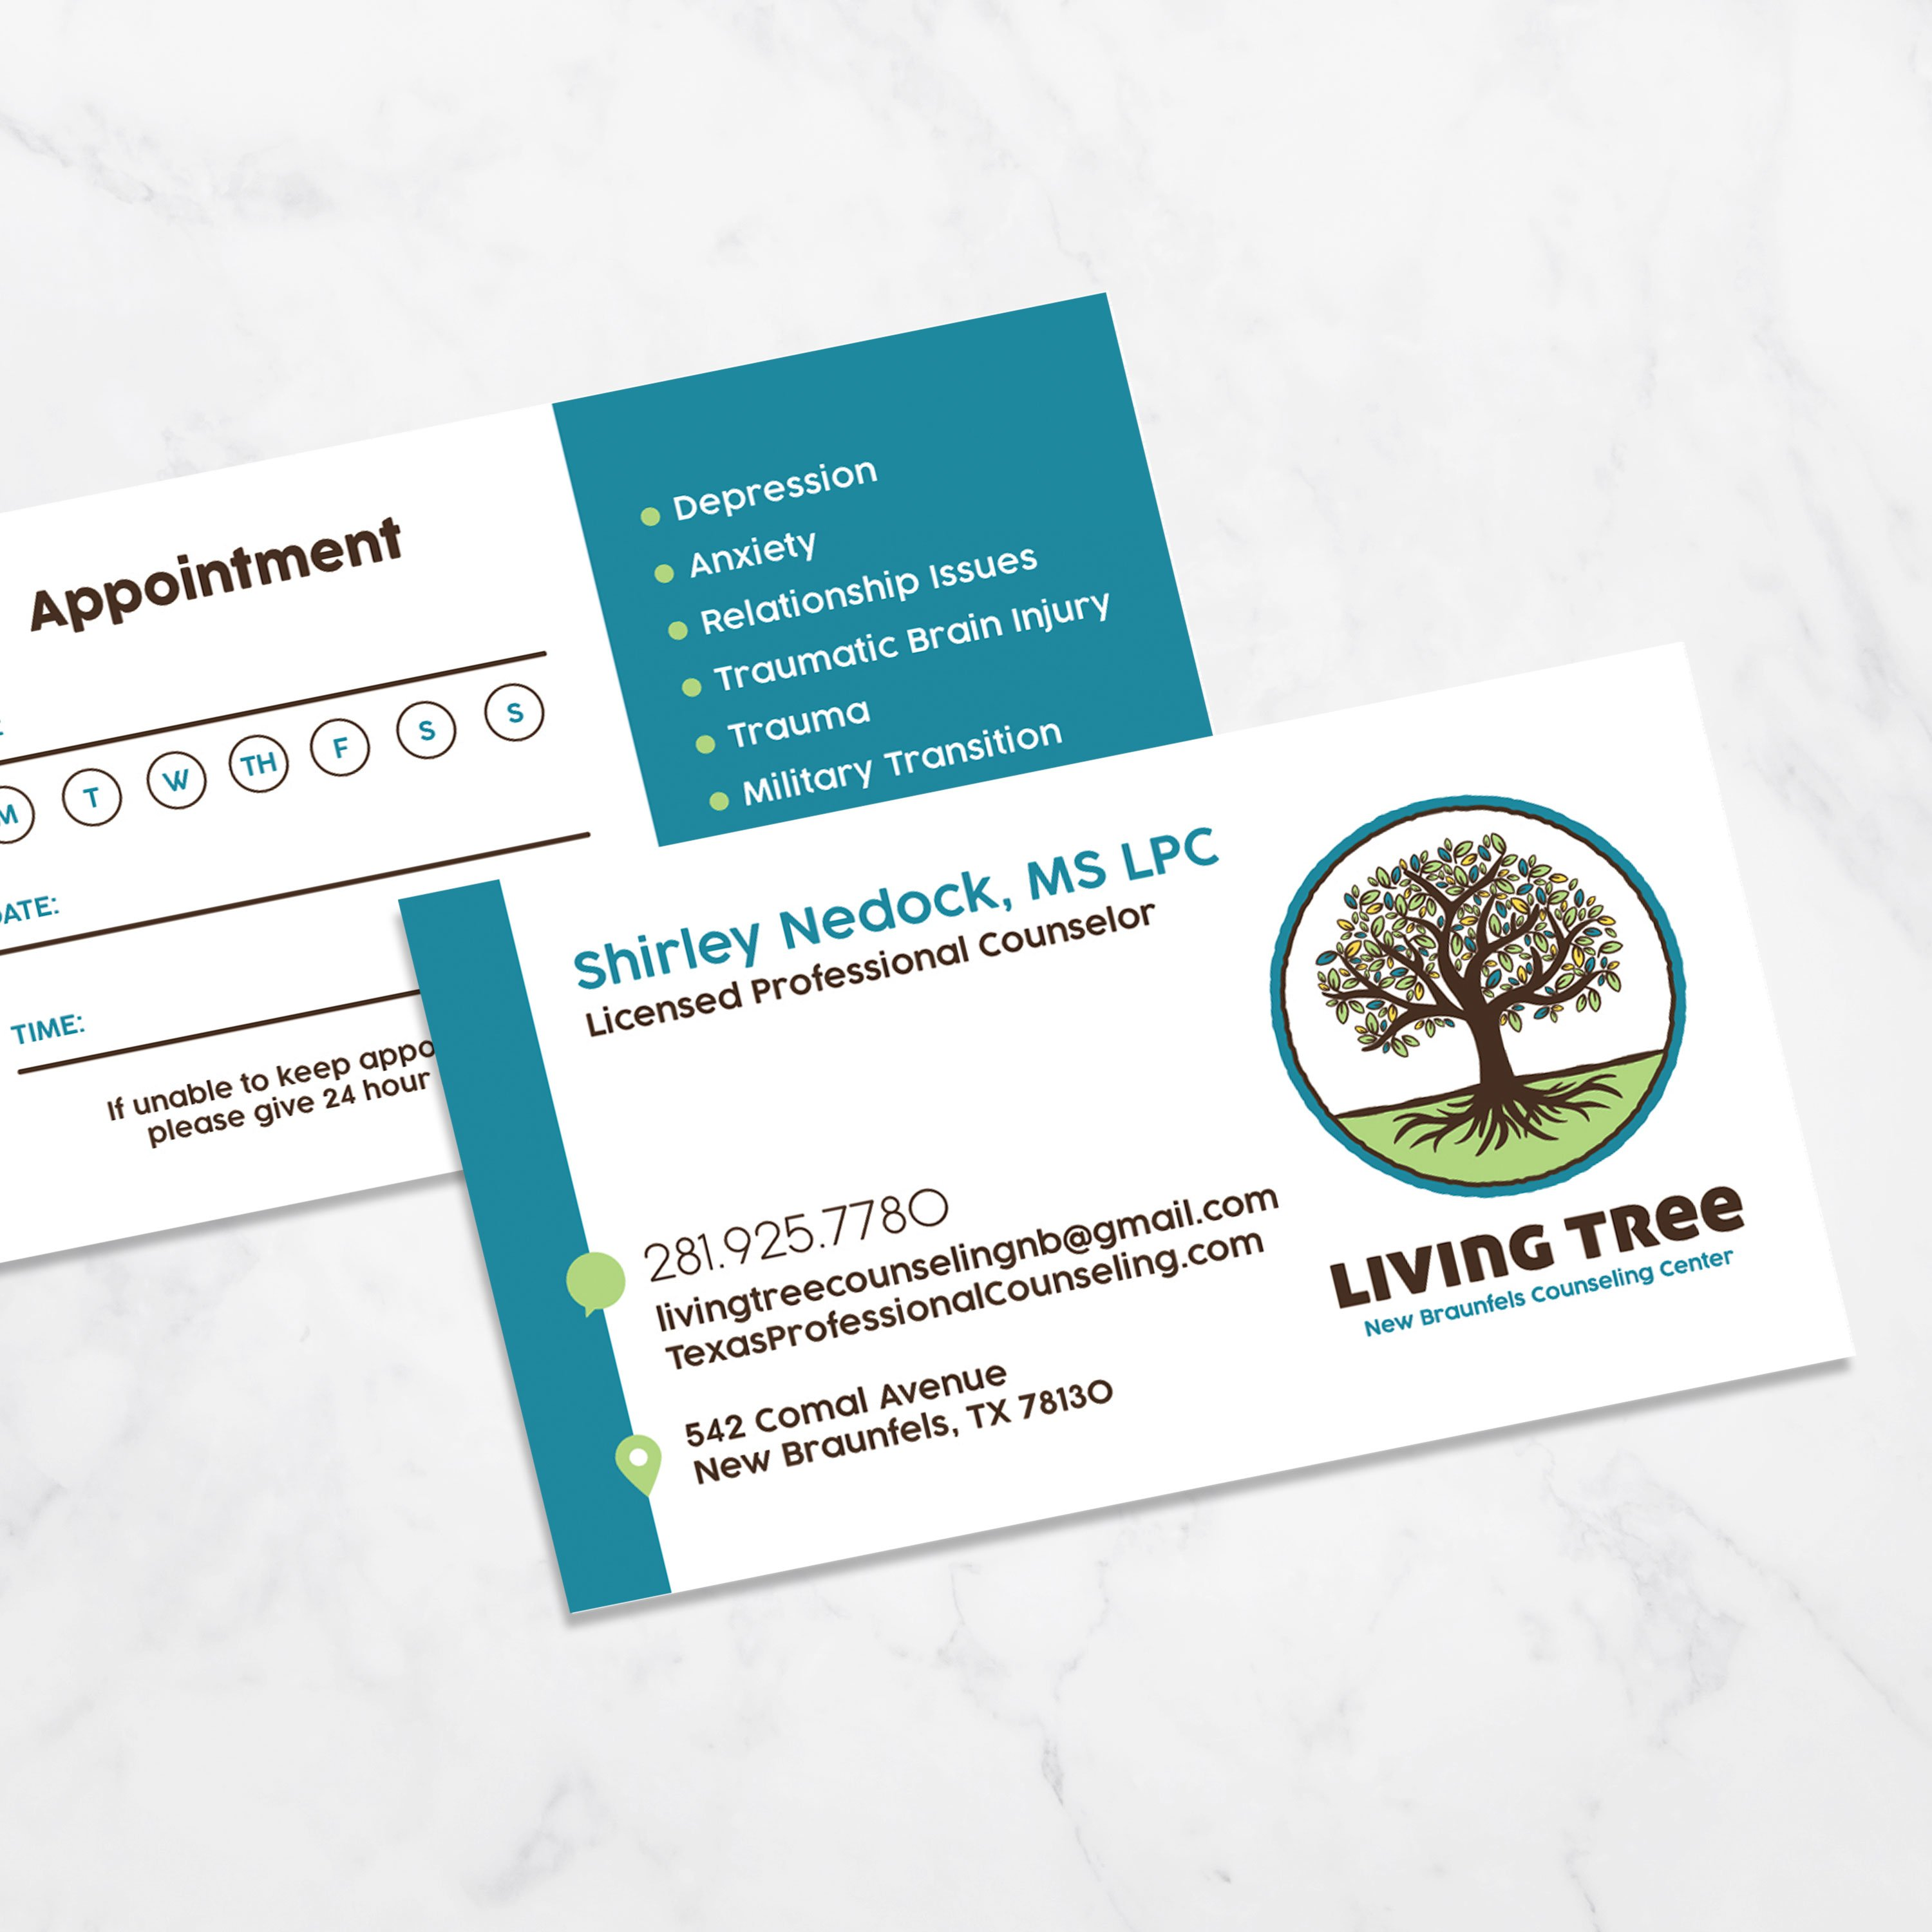 Living Tree New Braunfels Counseling Center Business Cards